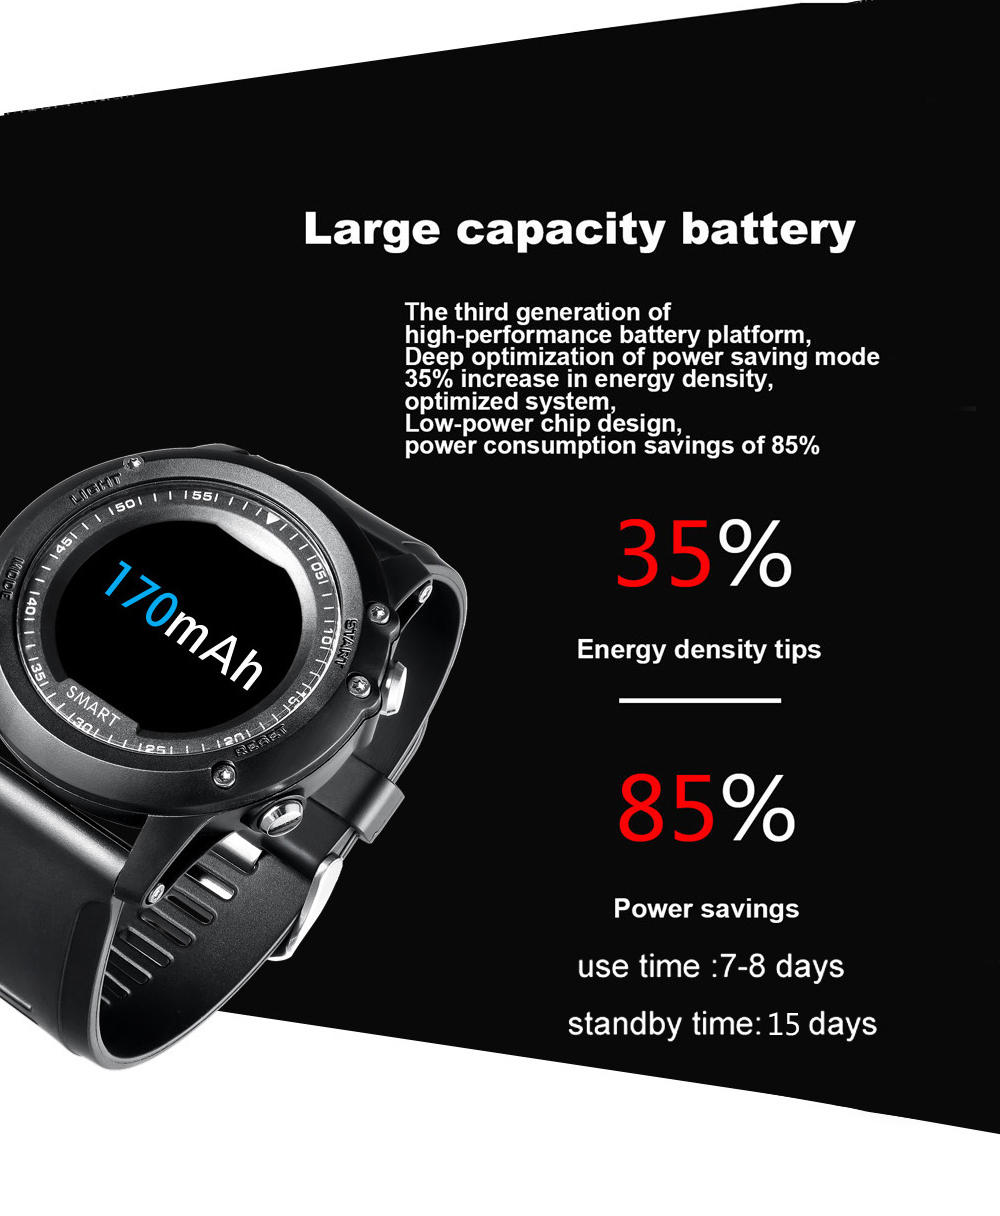 T2 0.96 inch Sports Smart Watch Bluetooth 4.0 96KB RAM 2MB ROM IP67 Waterproof Call / Message Reminder Heart Rate Monitor Blood Pressure Functions- Black